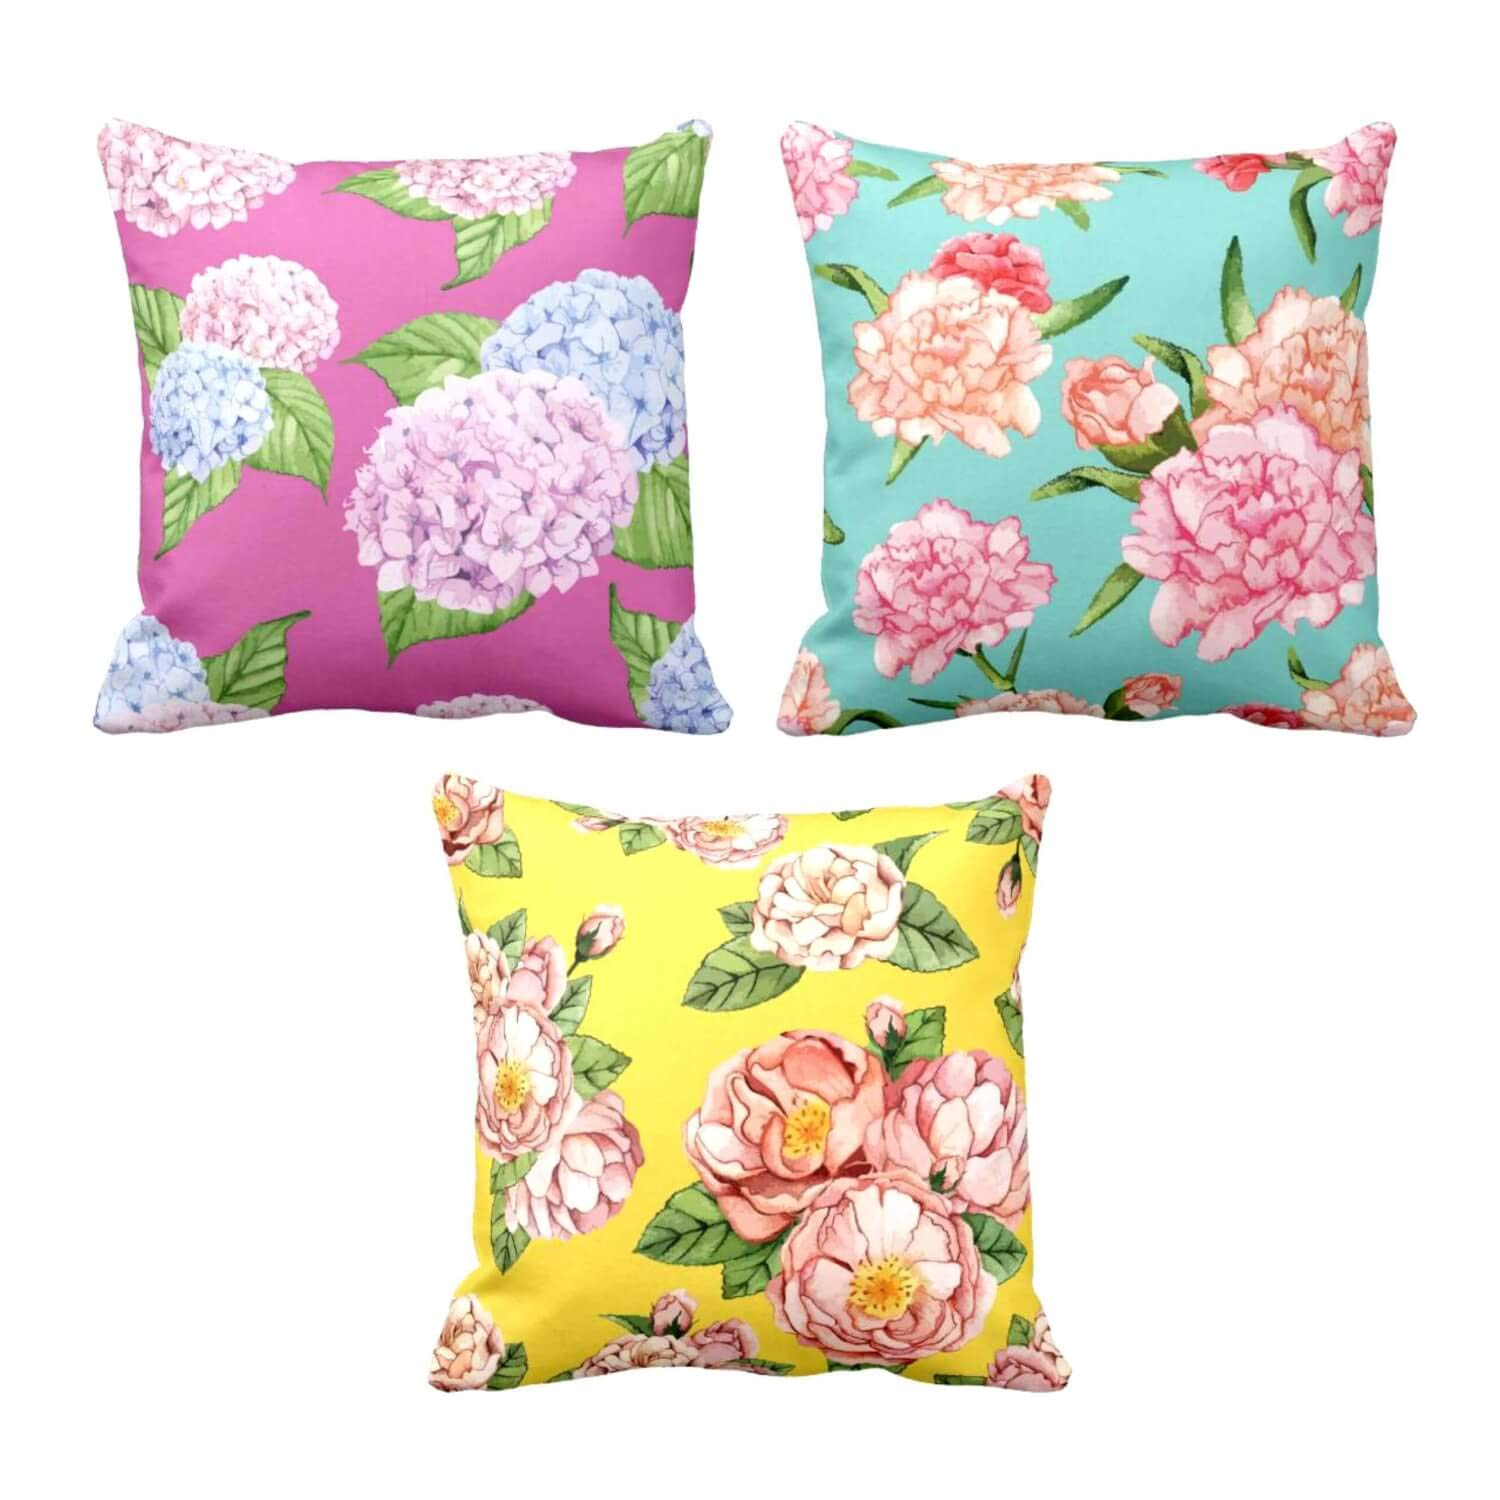 Buy Theyayacafe 24x24 Inches Set Of 3 Cushion Covers Pleasing Symmetrical Floral Flowers Printed Sofa Throw Pillows Multicolor Online At Low Prices In India Amazon In